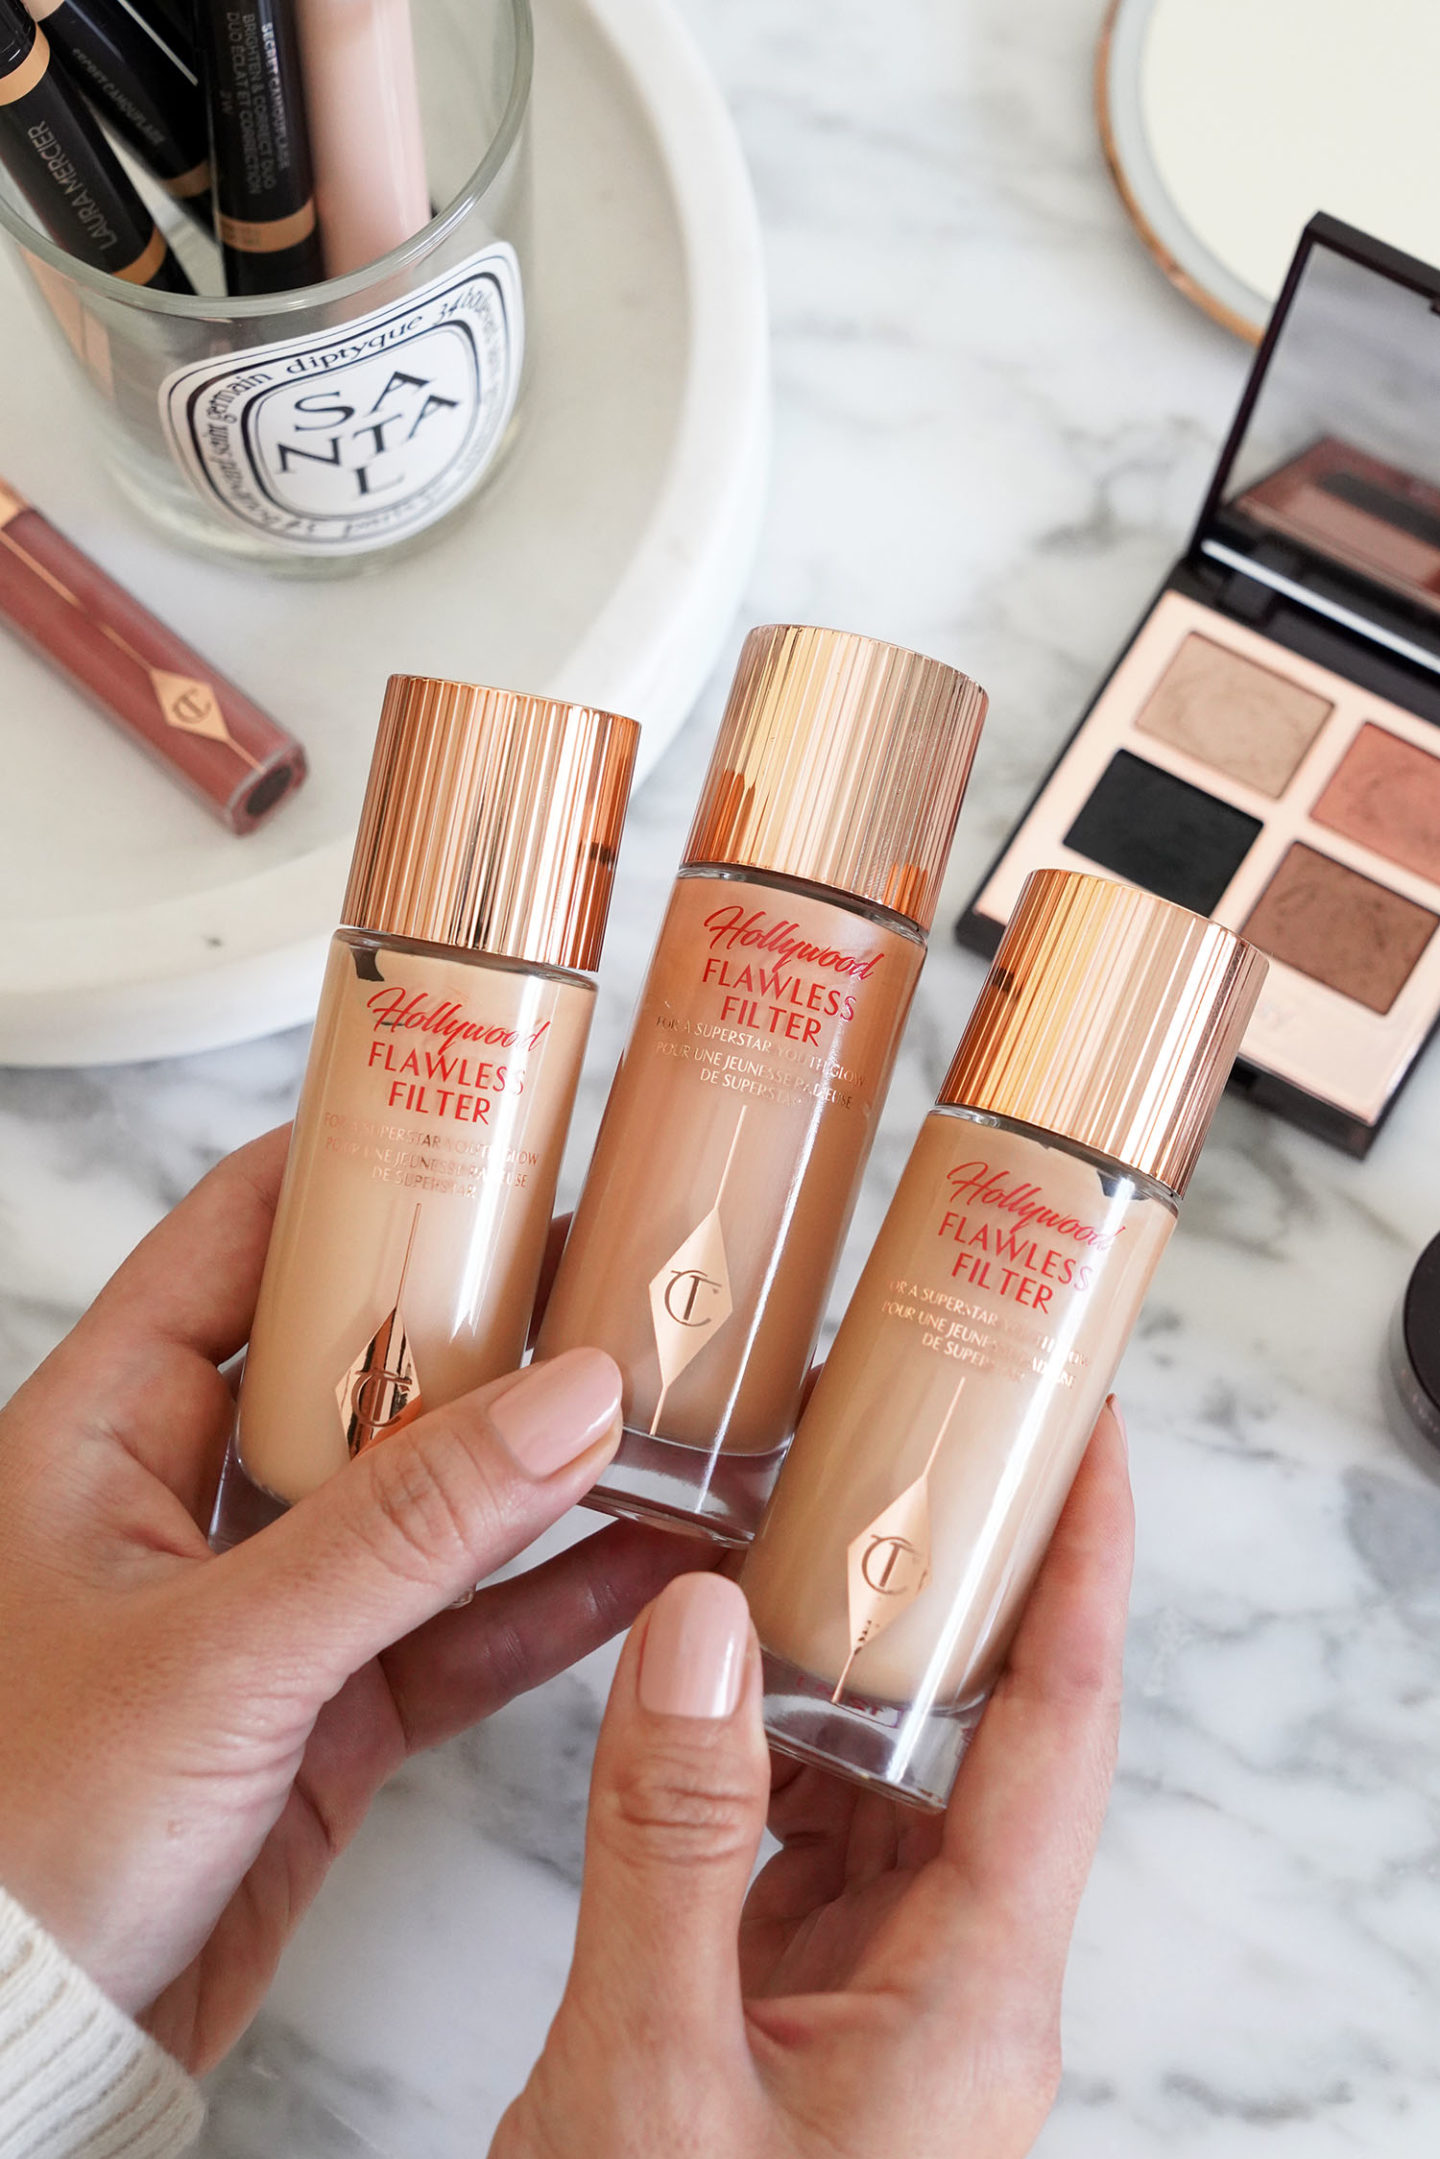 Charlotte Tilbury Hollywood Flawless Filter Primer and Highlighter